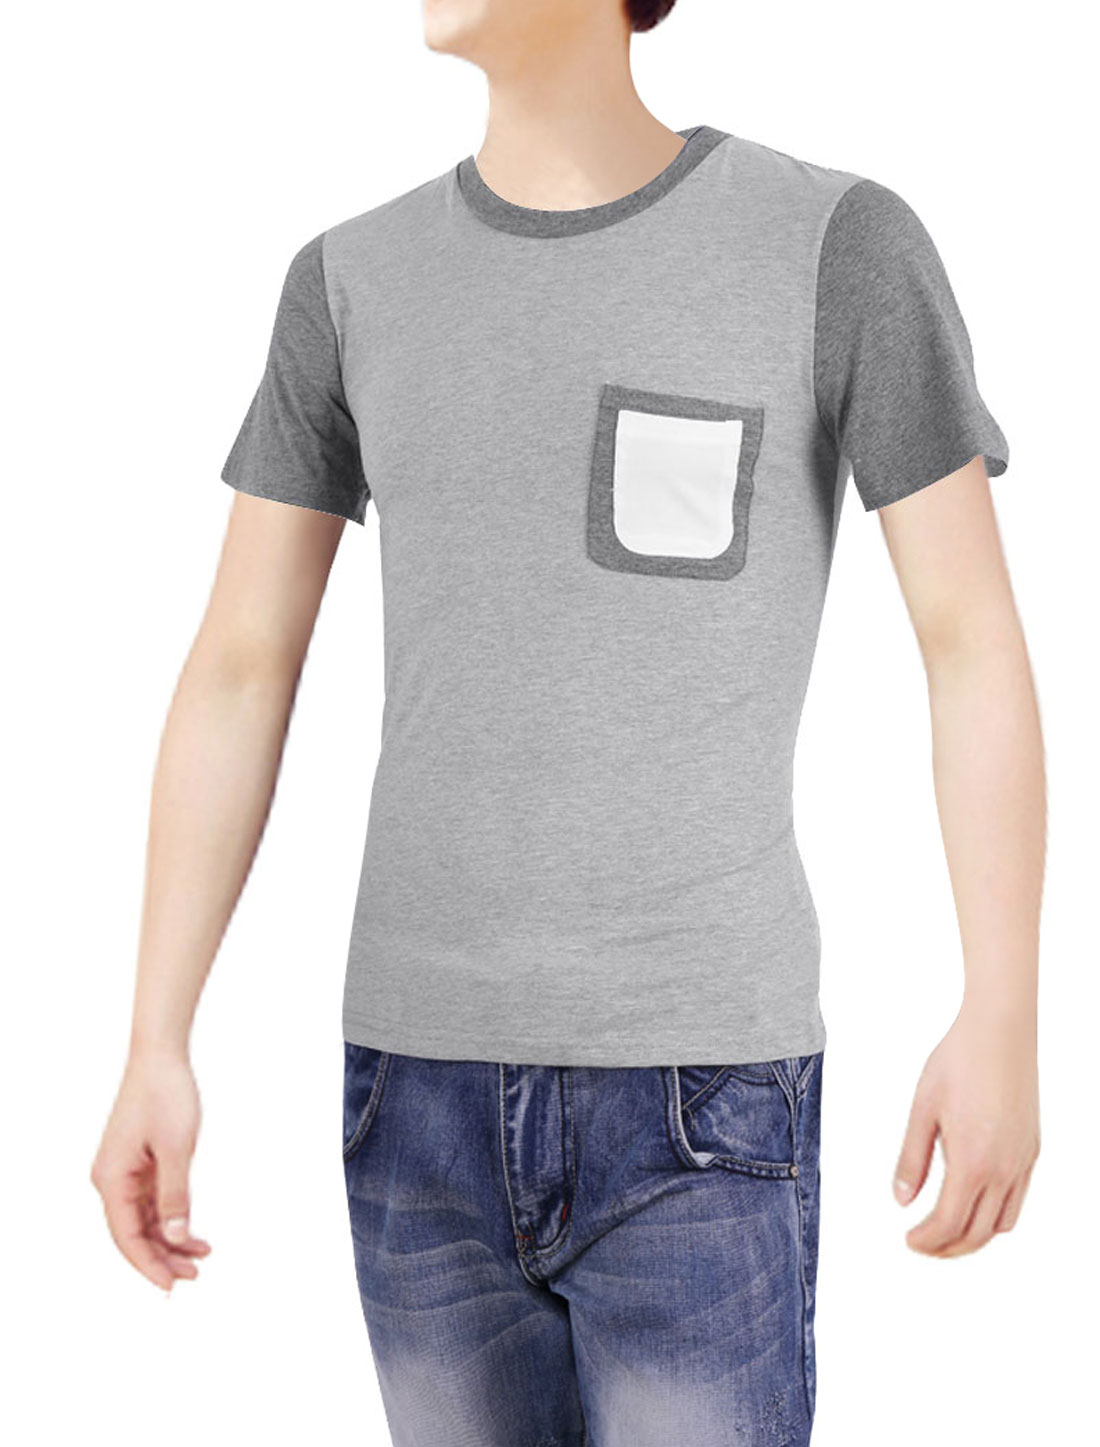 Men Short-sleeved Pockets Round Neck Korean Style Tops Shirt Light Gray S